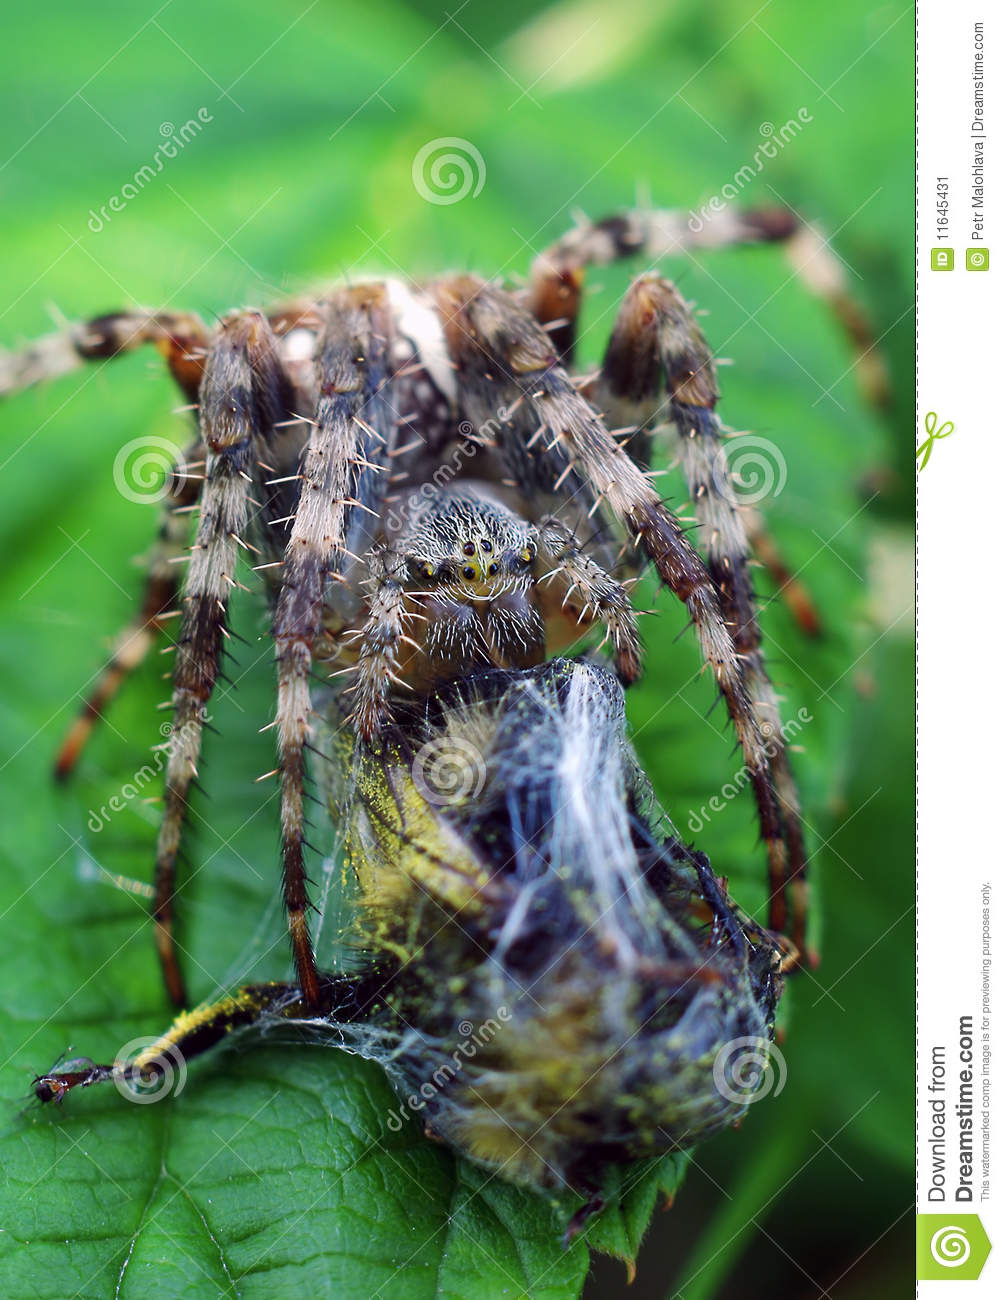 Spinne mit Fang